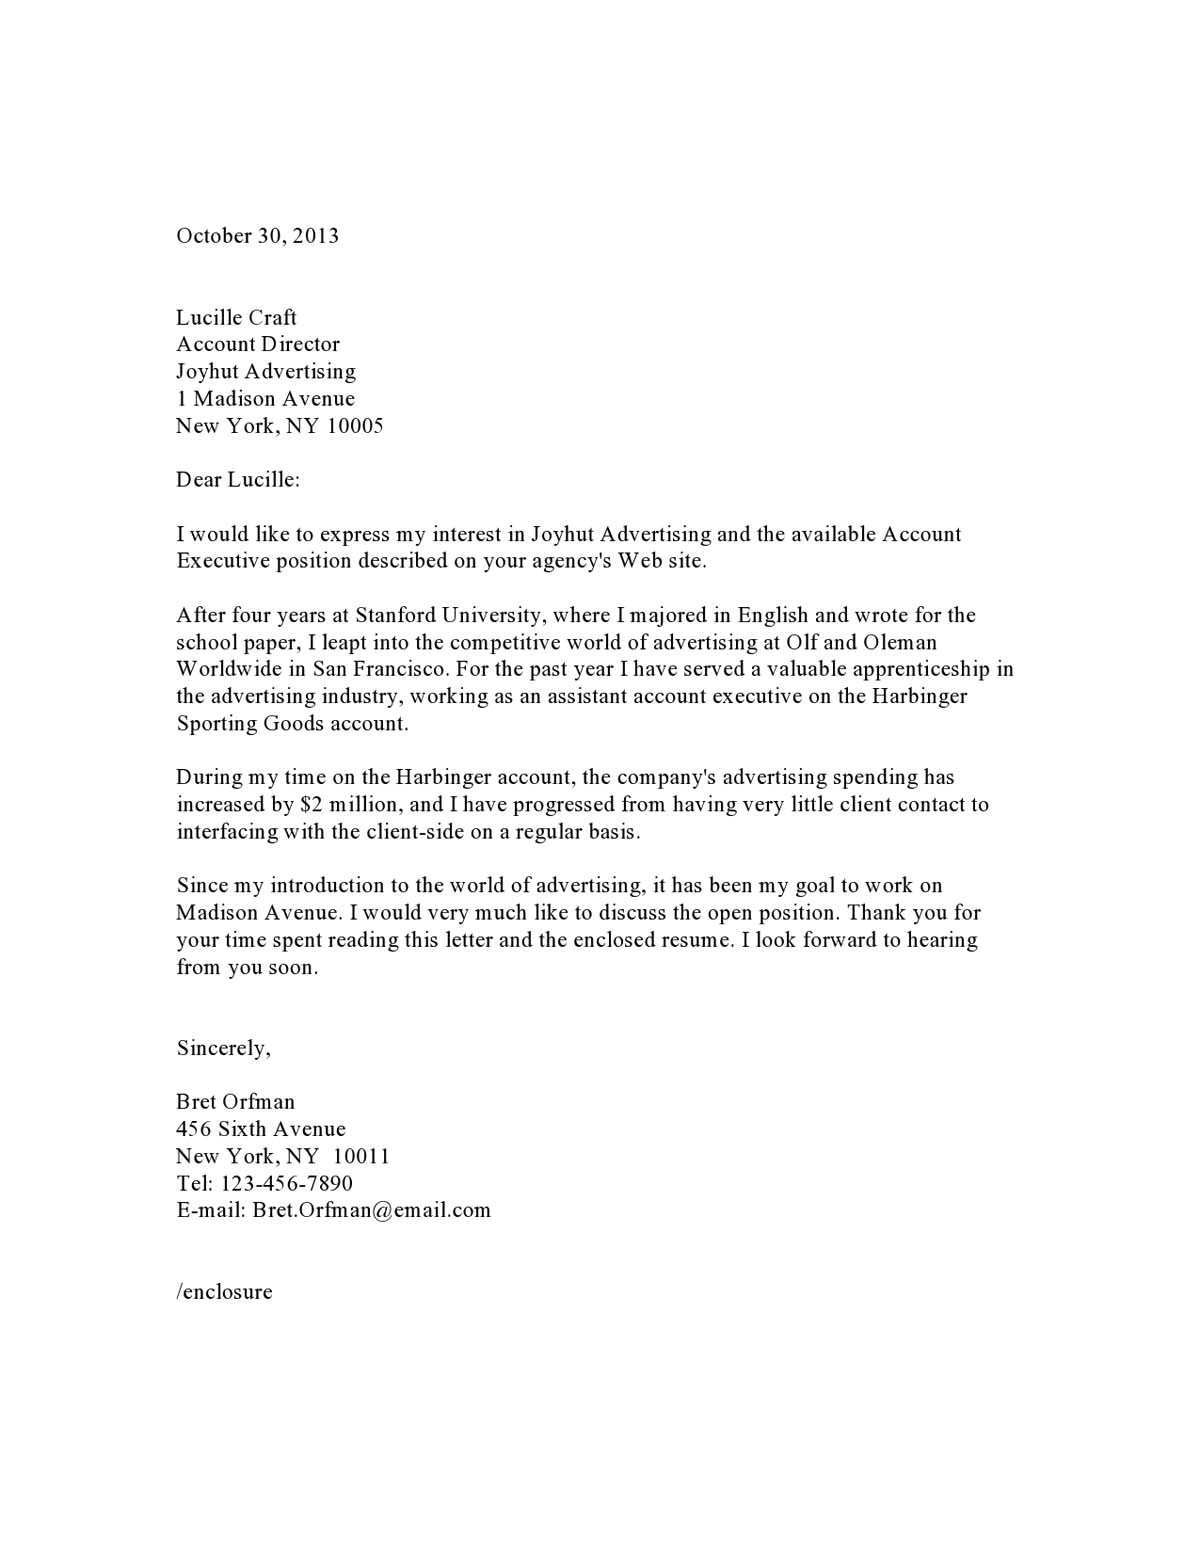 Cover Letter Exsamples Download Cover Letter Professional Sample Pdf Templates